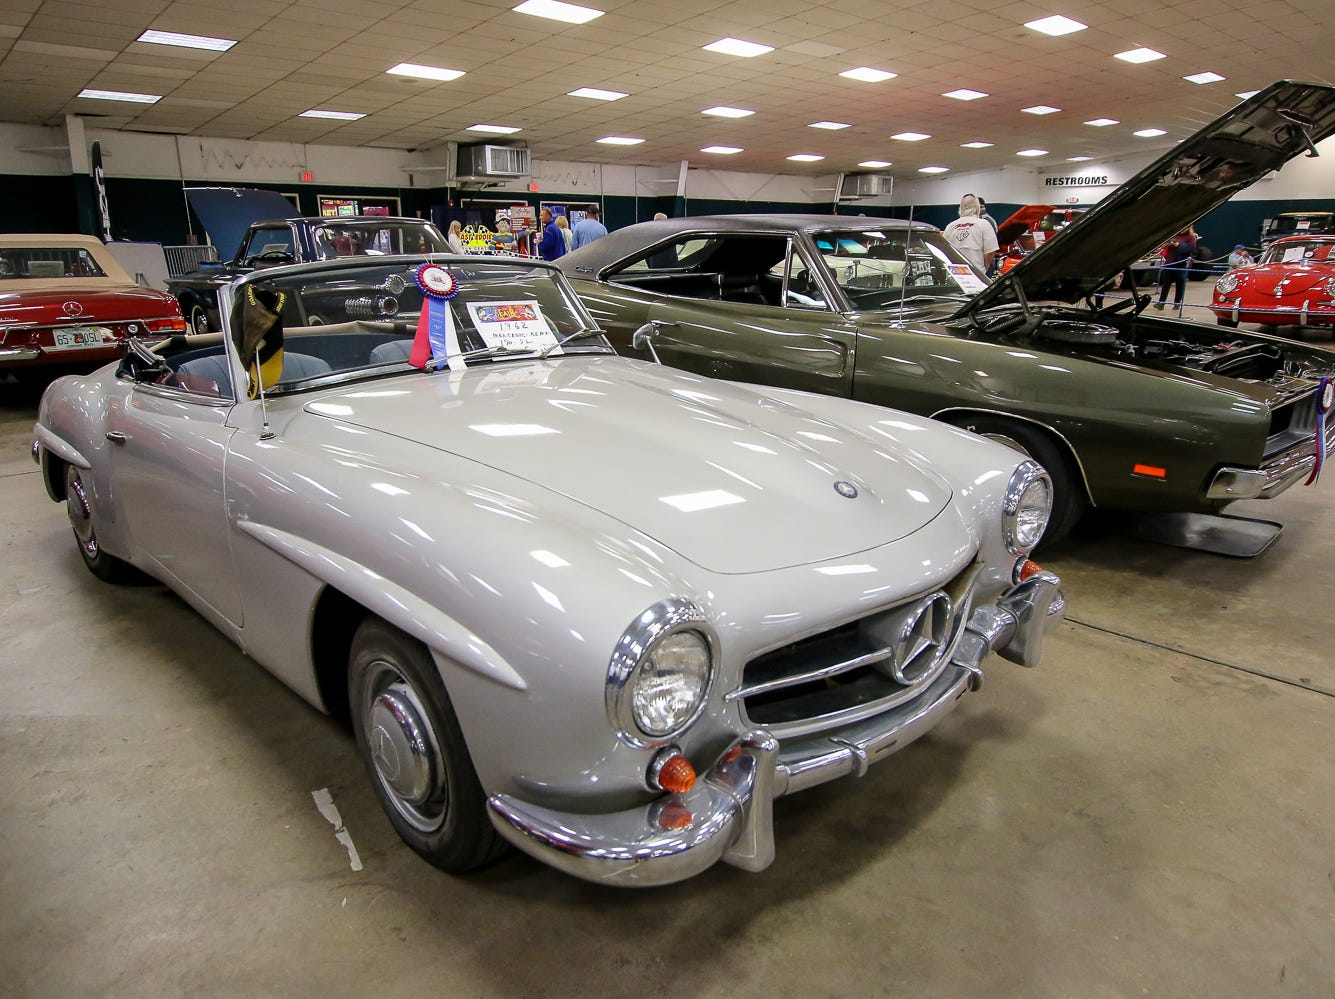 Some of the cars on display during the 84th annual Pensacola Interstate Fair on Monday, October 22, 2018.